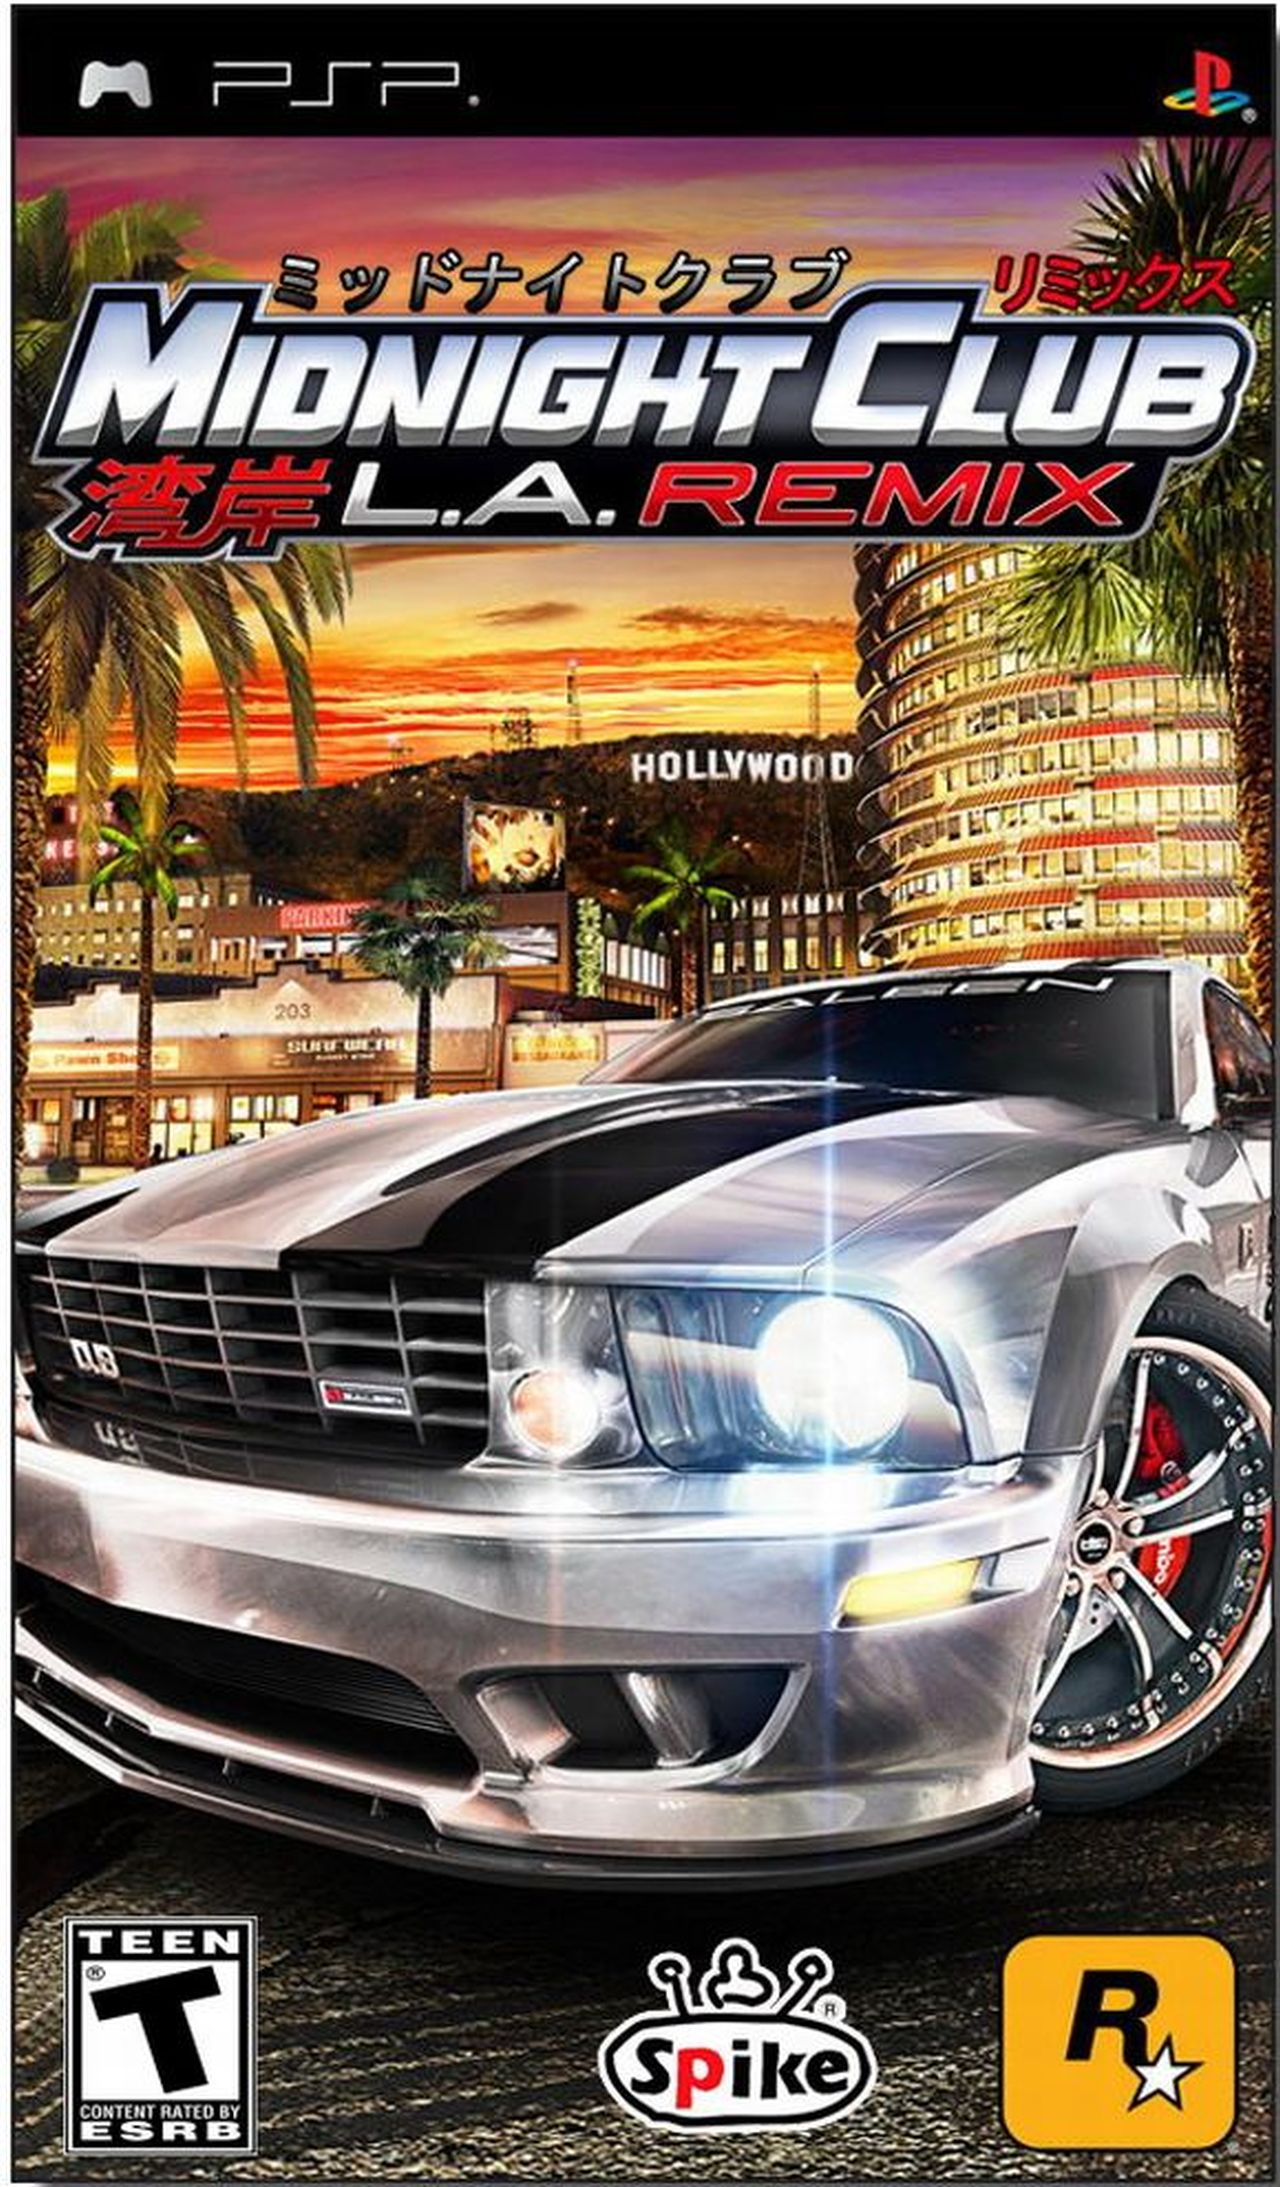 Midnight Club - L.A. Remix